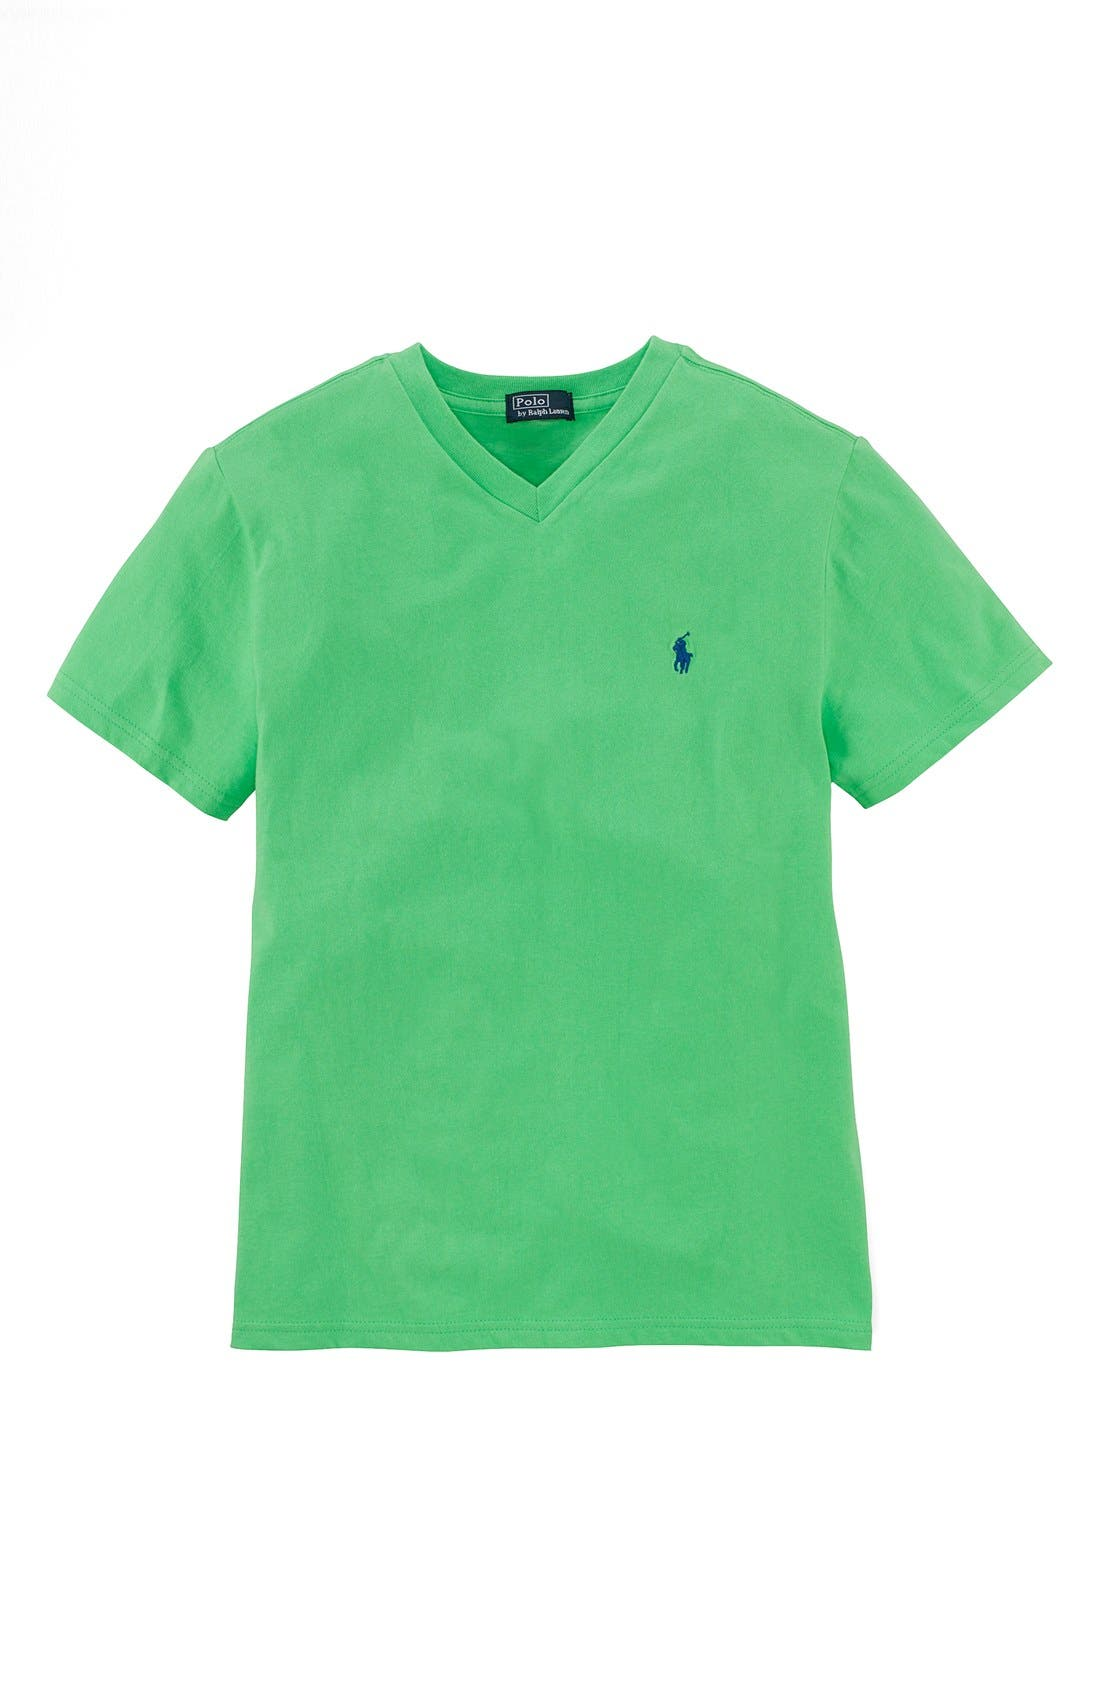 Alternate Image 1 Selected - Ralph Lauren V-Neck T-Shirt (Big Boys)